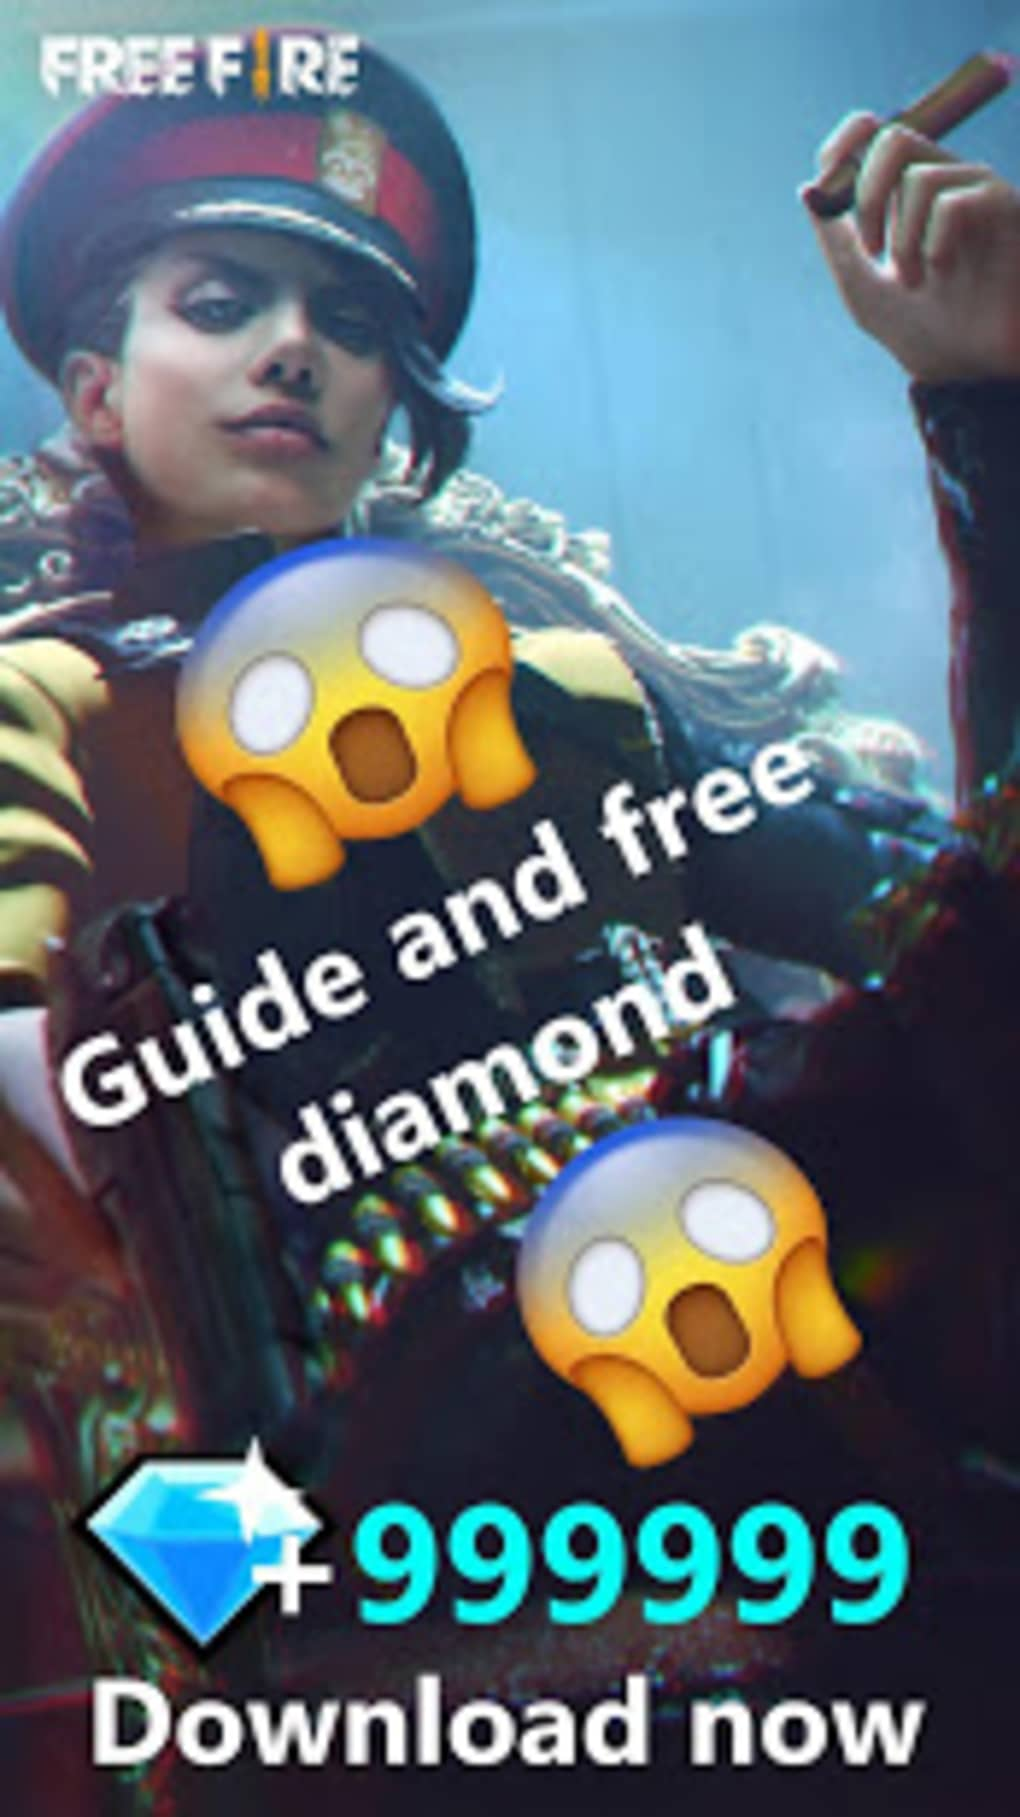 Free Fire Guide and Diamonds Free for Android - Download